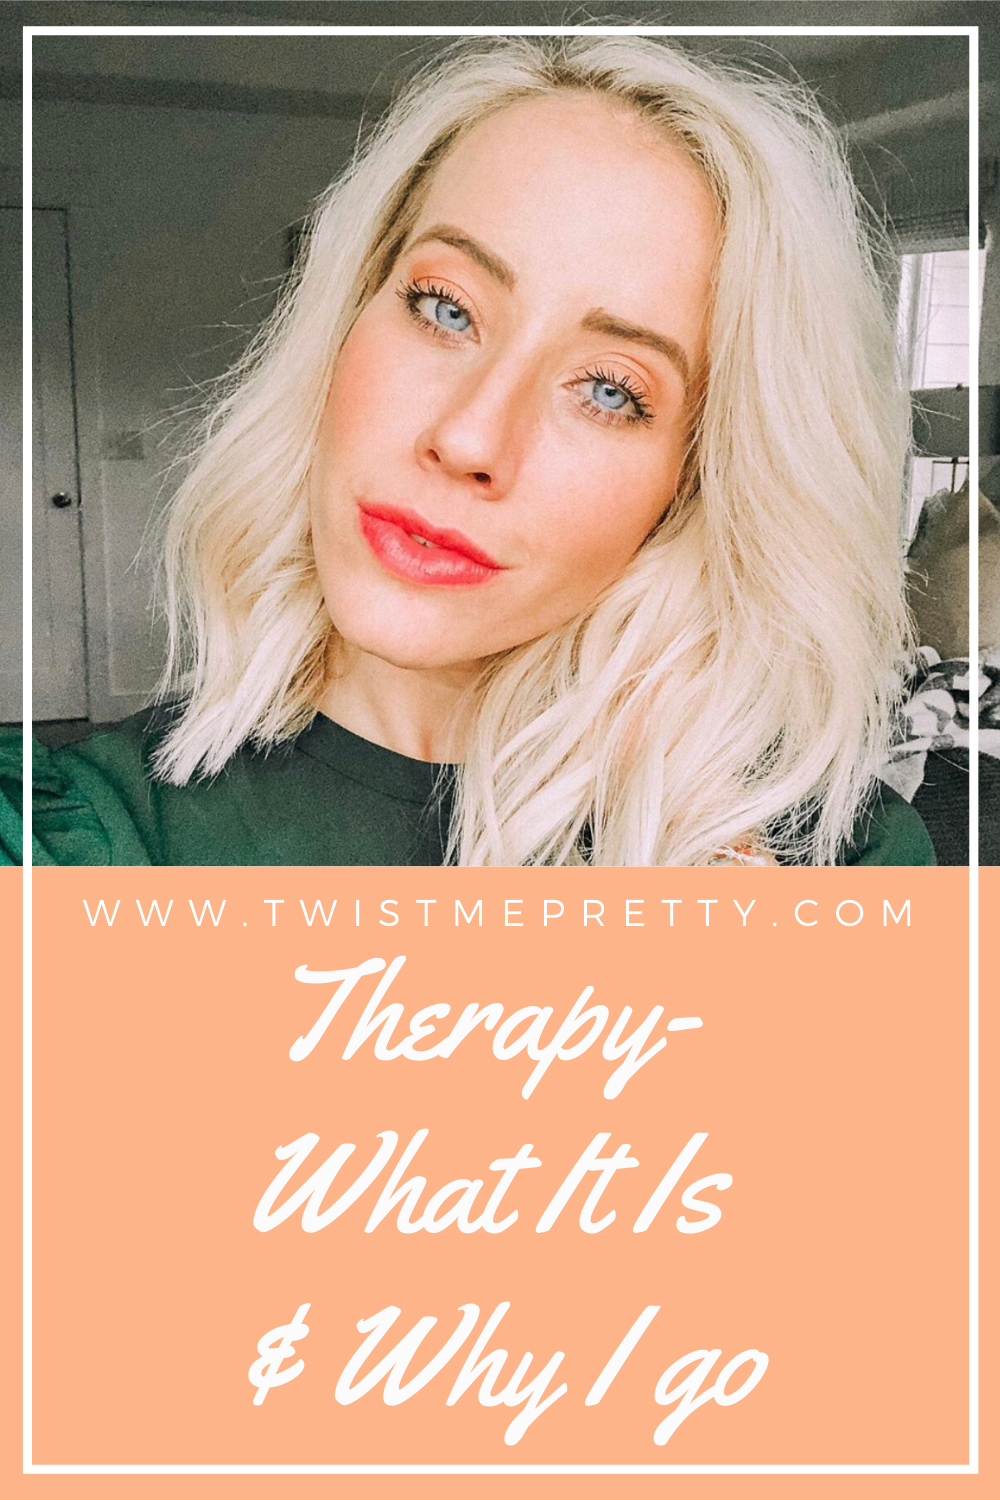 Therapy- What it is, and why I go. www.TwistMePretty.com